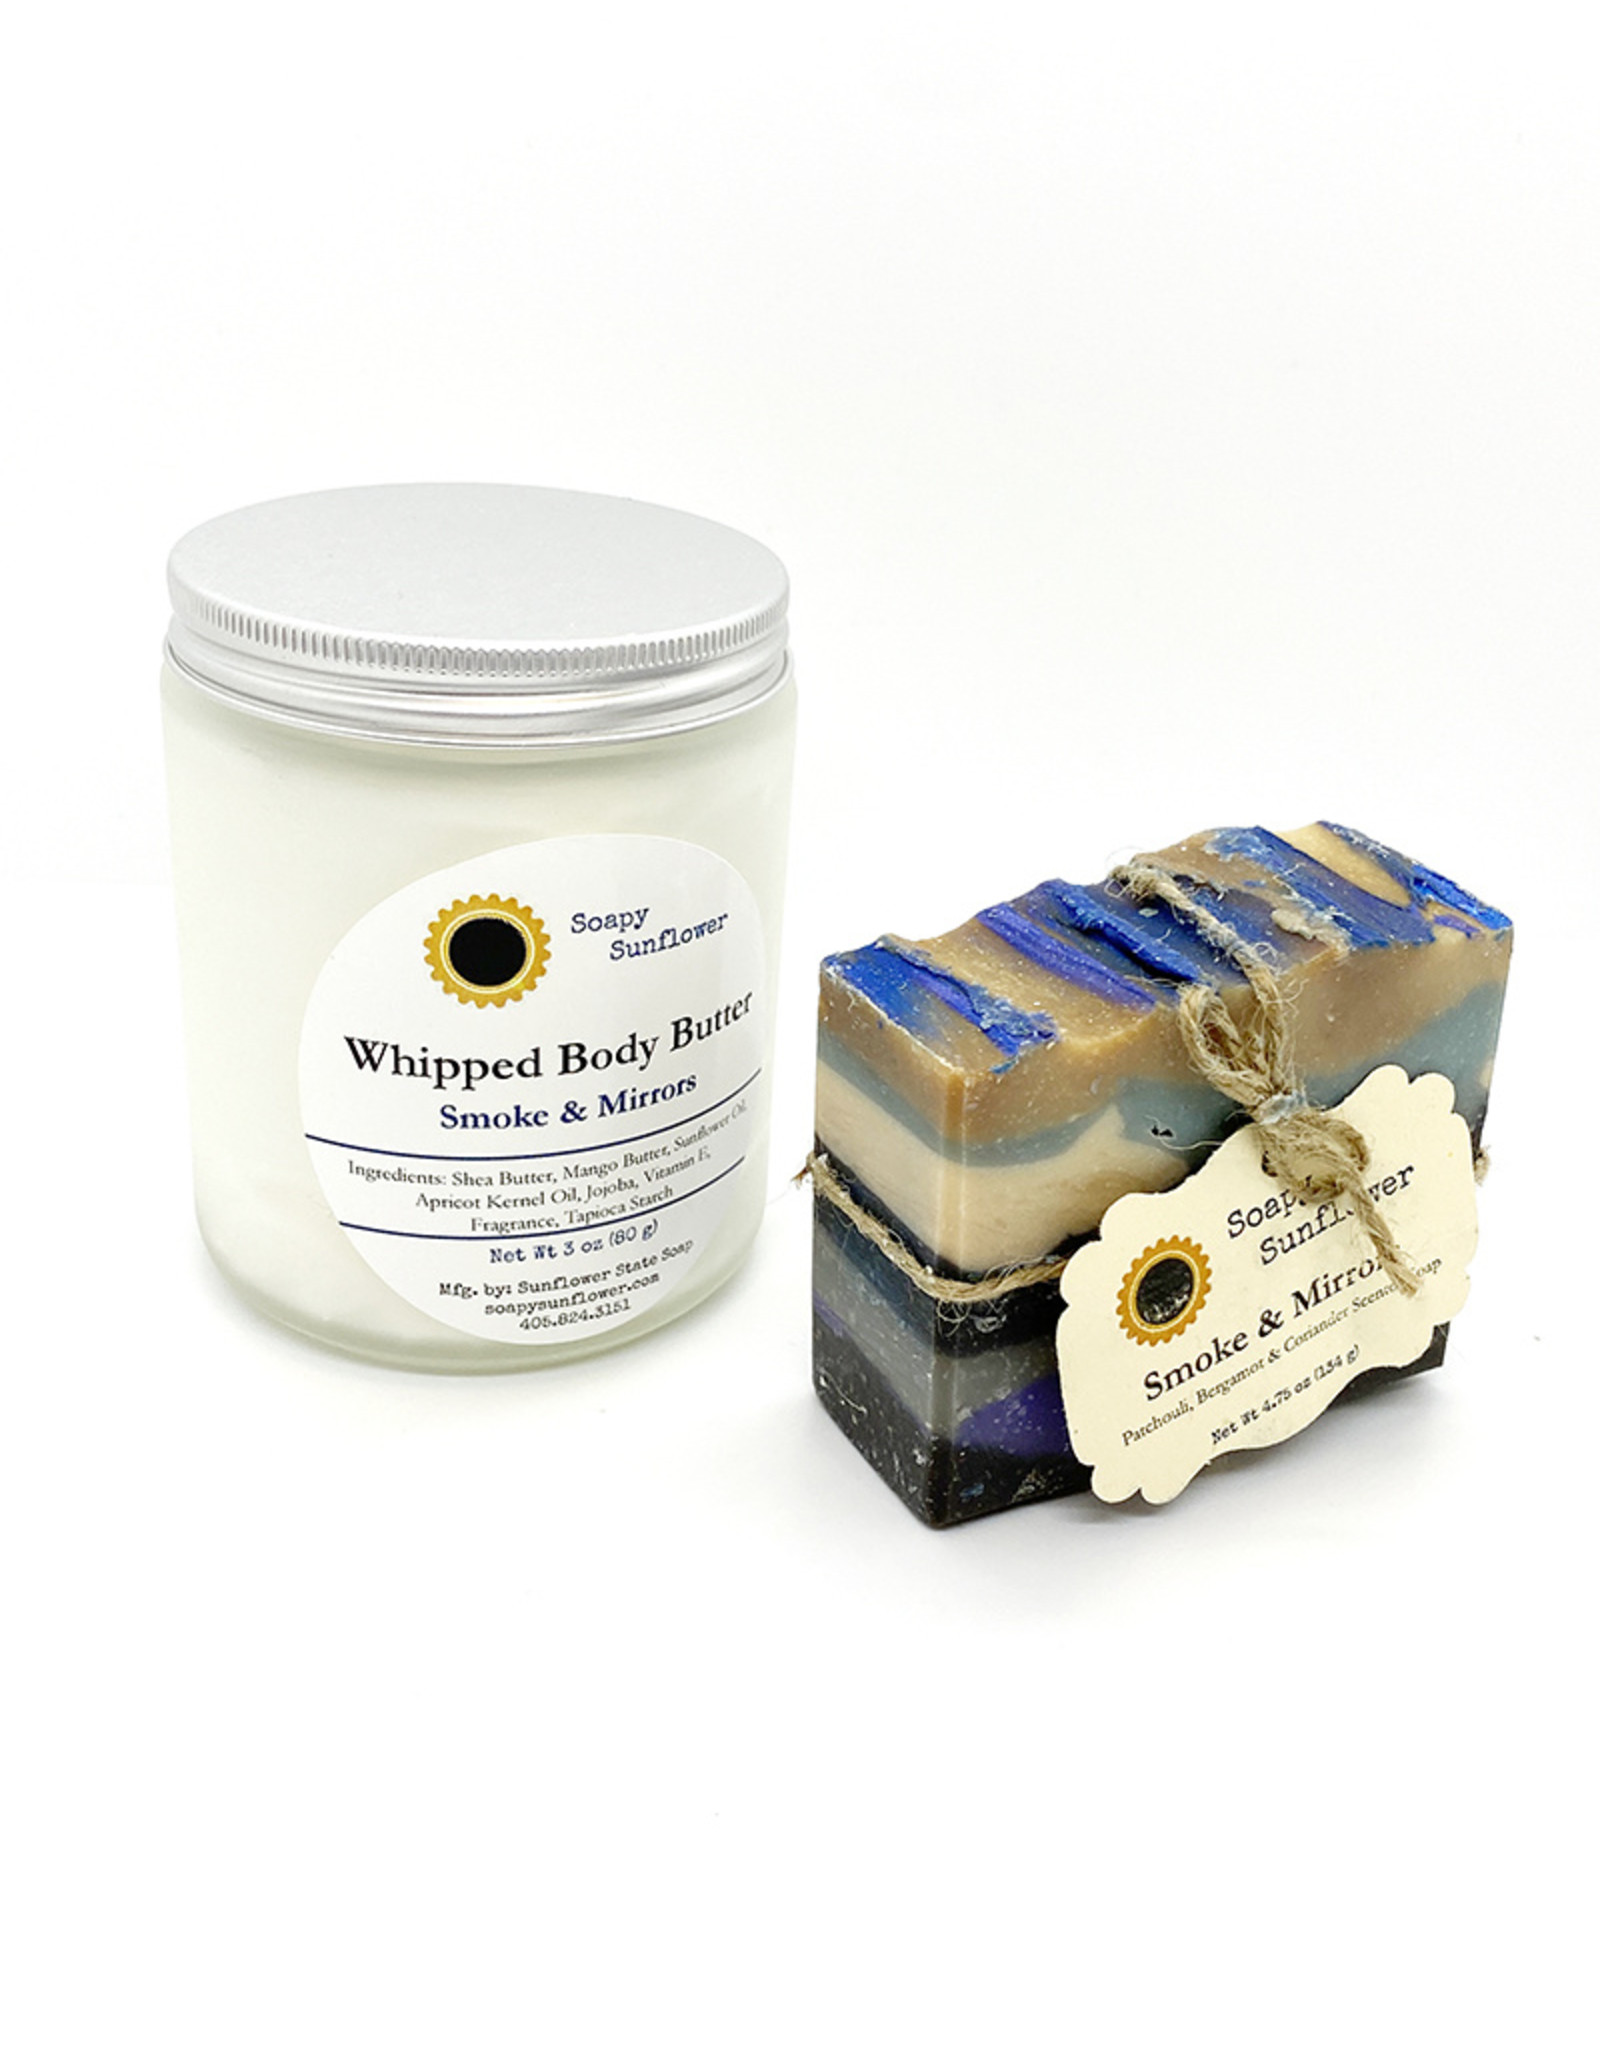 sunflower state soap Smoke & Mirrors Whipped Body Butter + Handcrafted Soap Gift Set